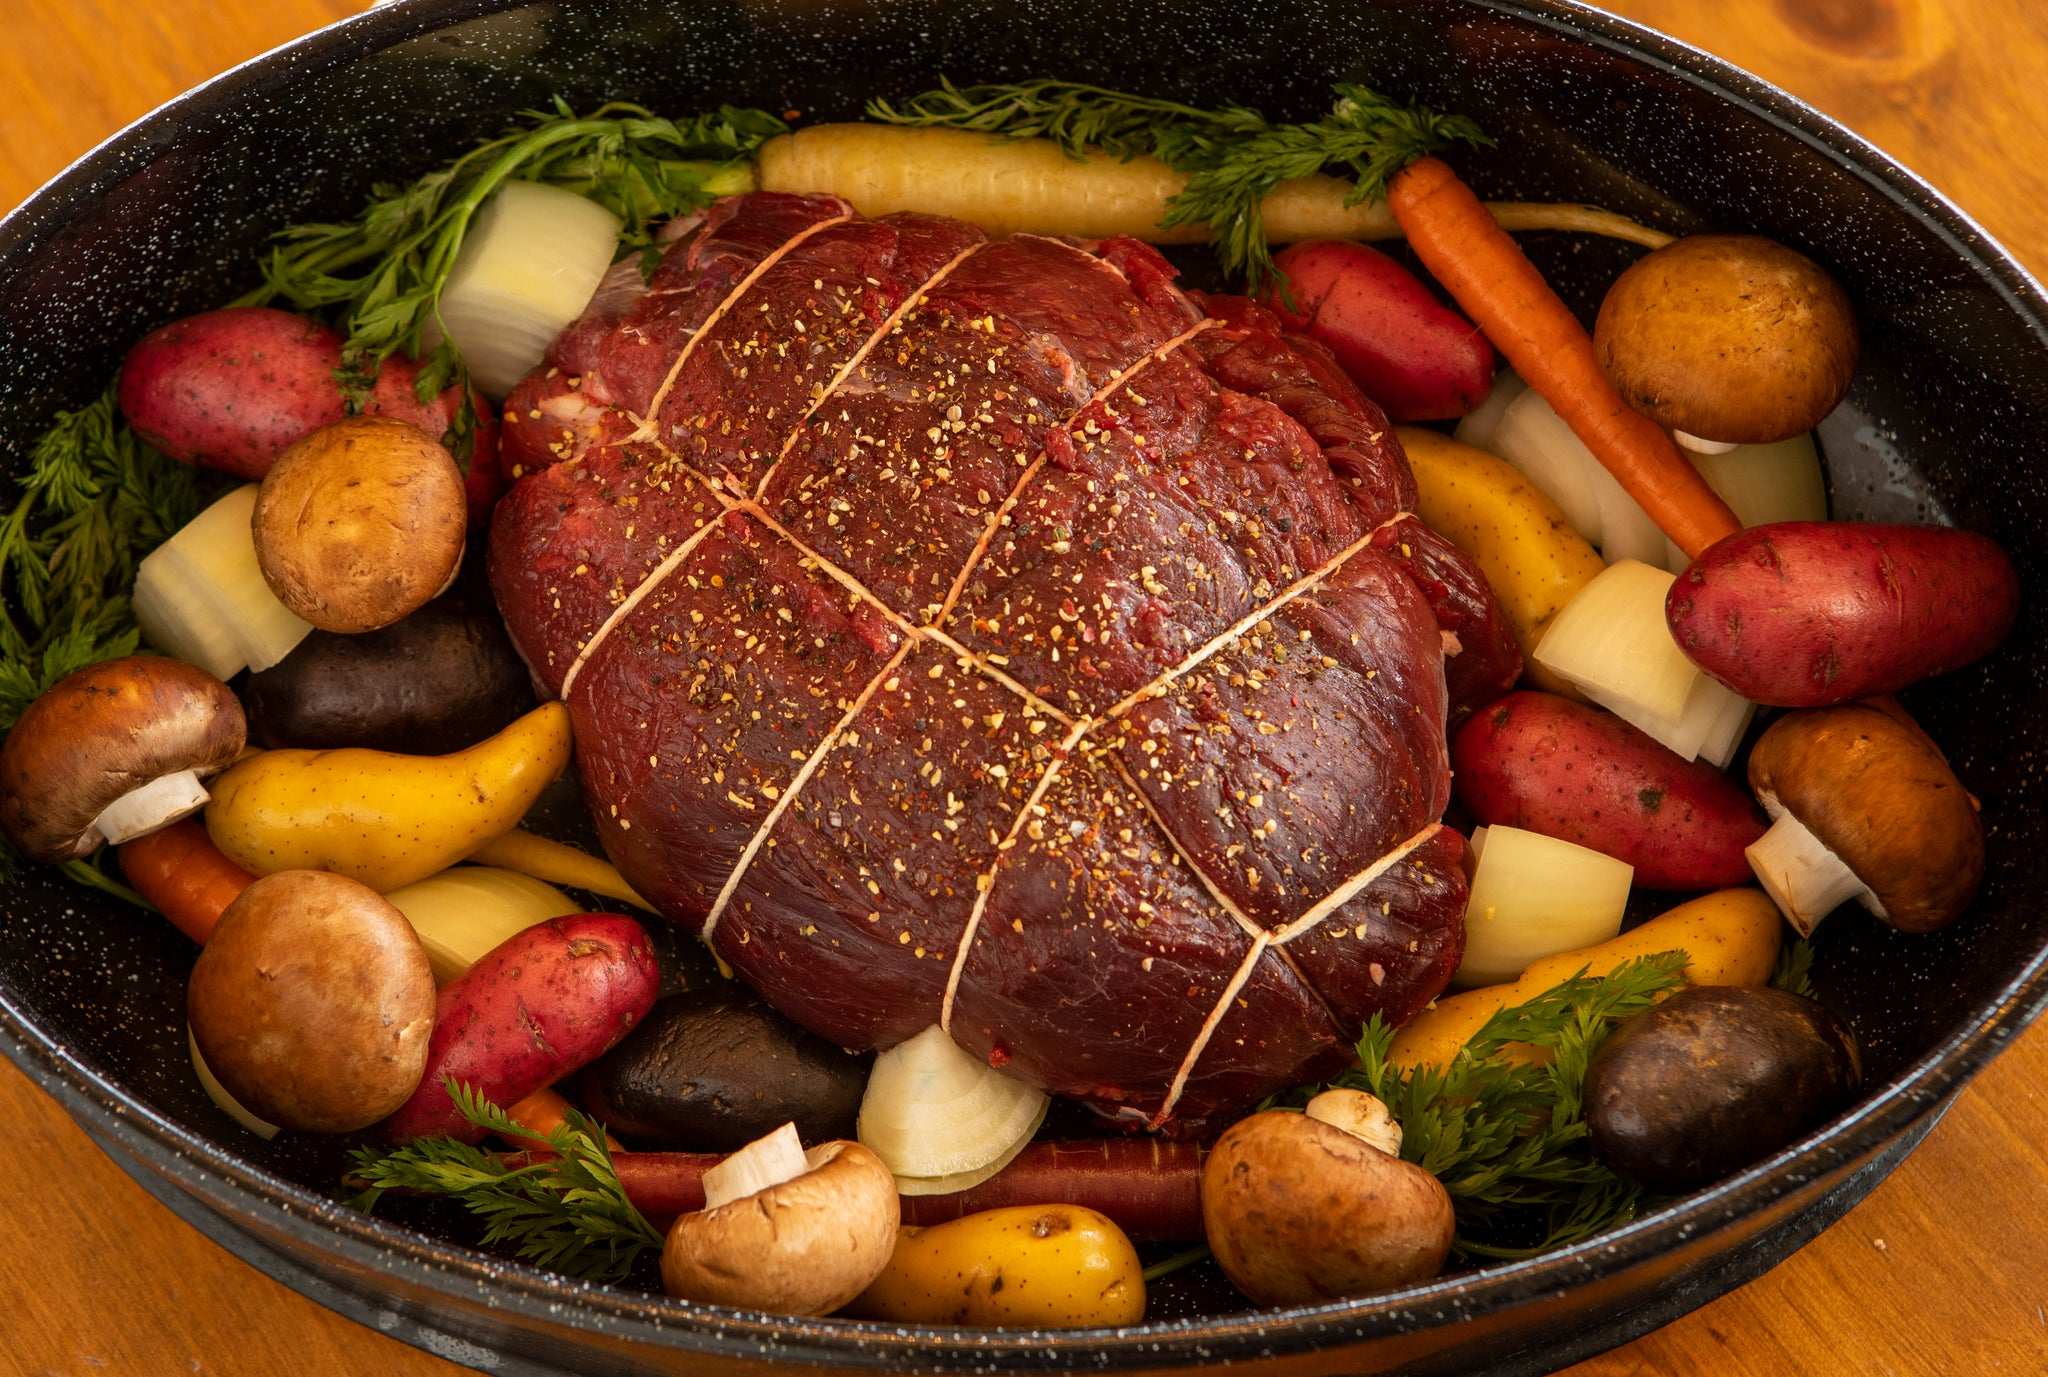 ostrich tips in pot with carrots, potatoes and mushrooms